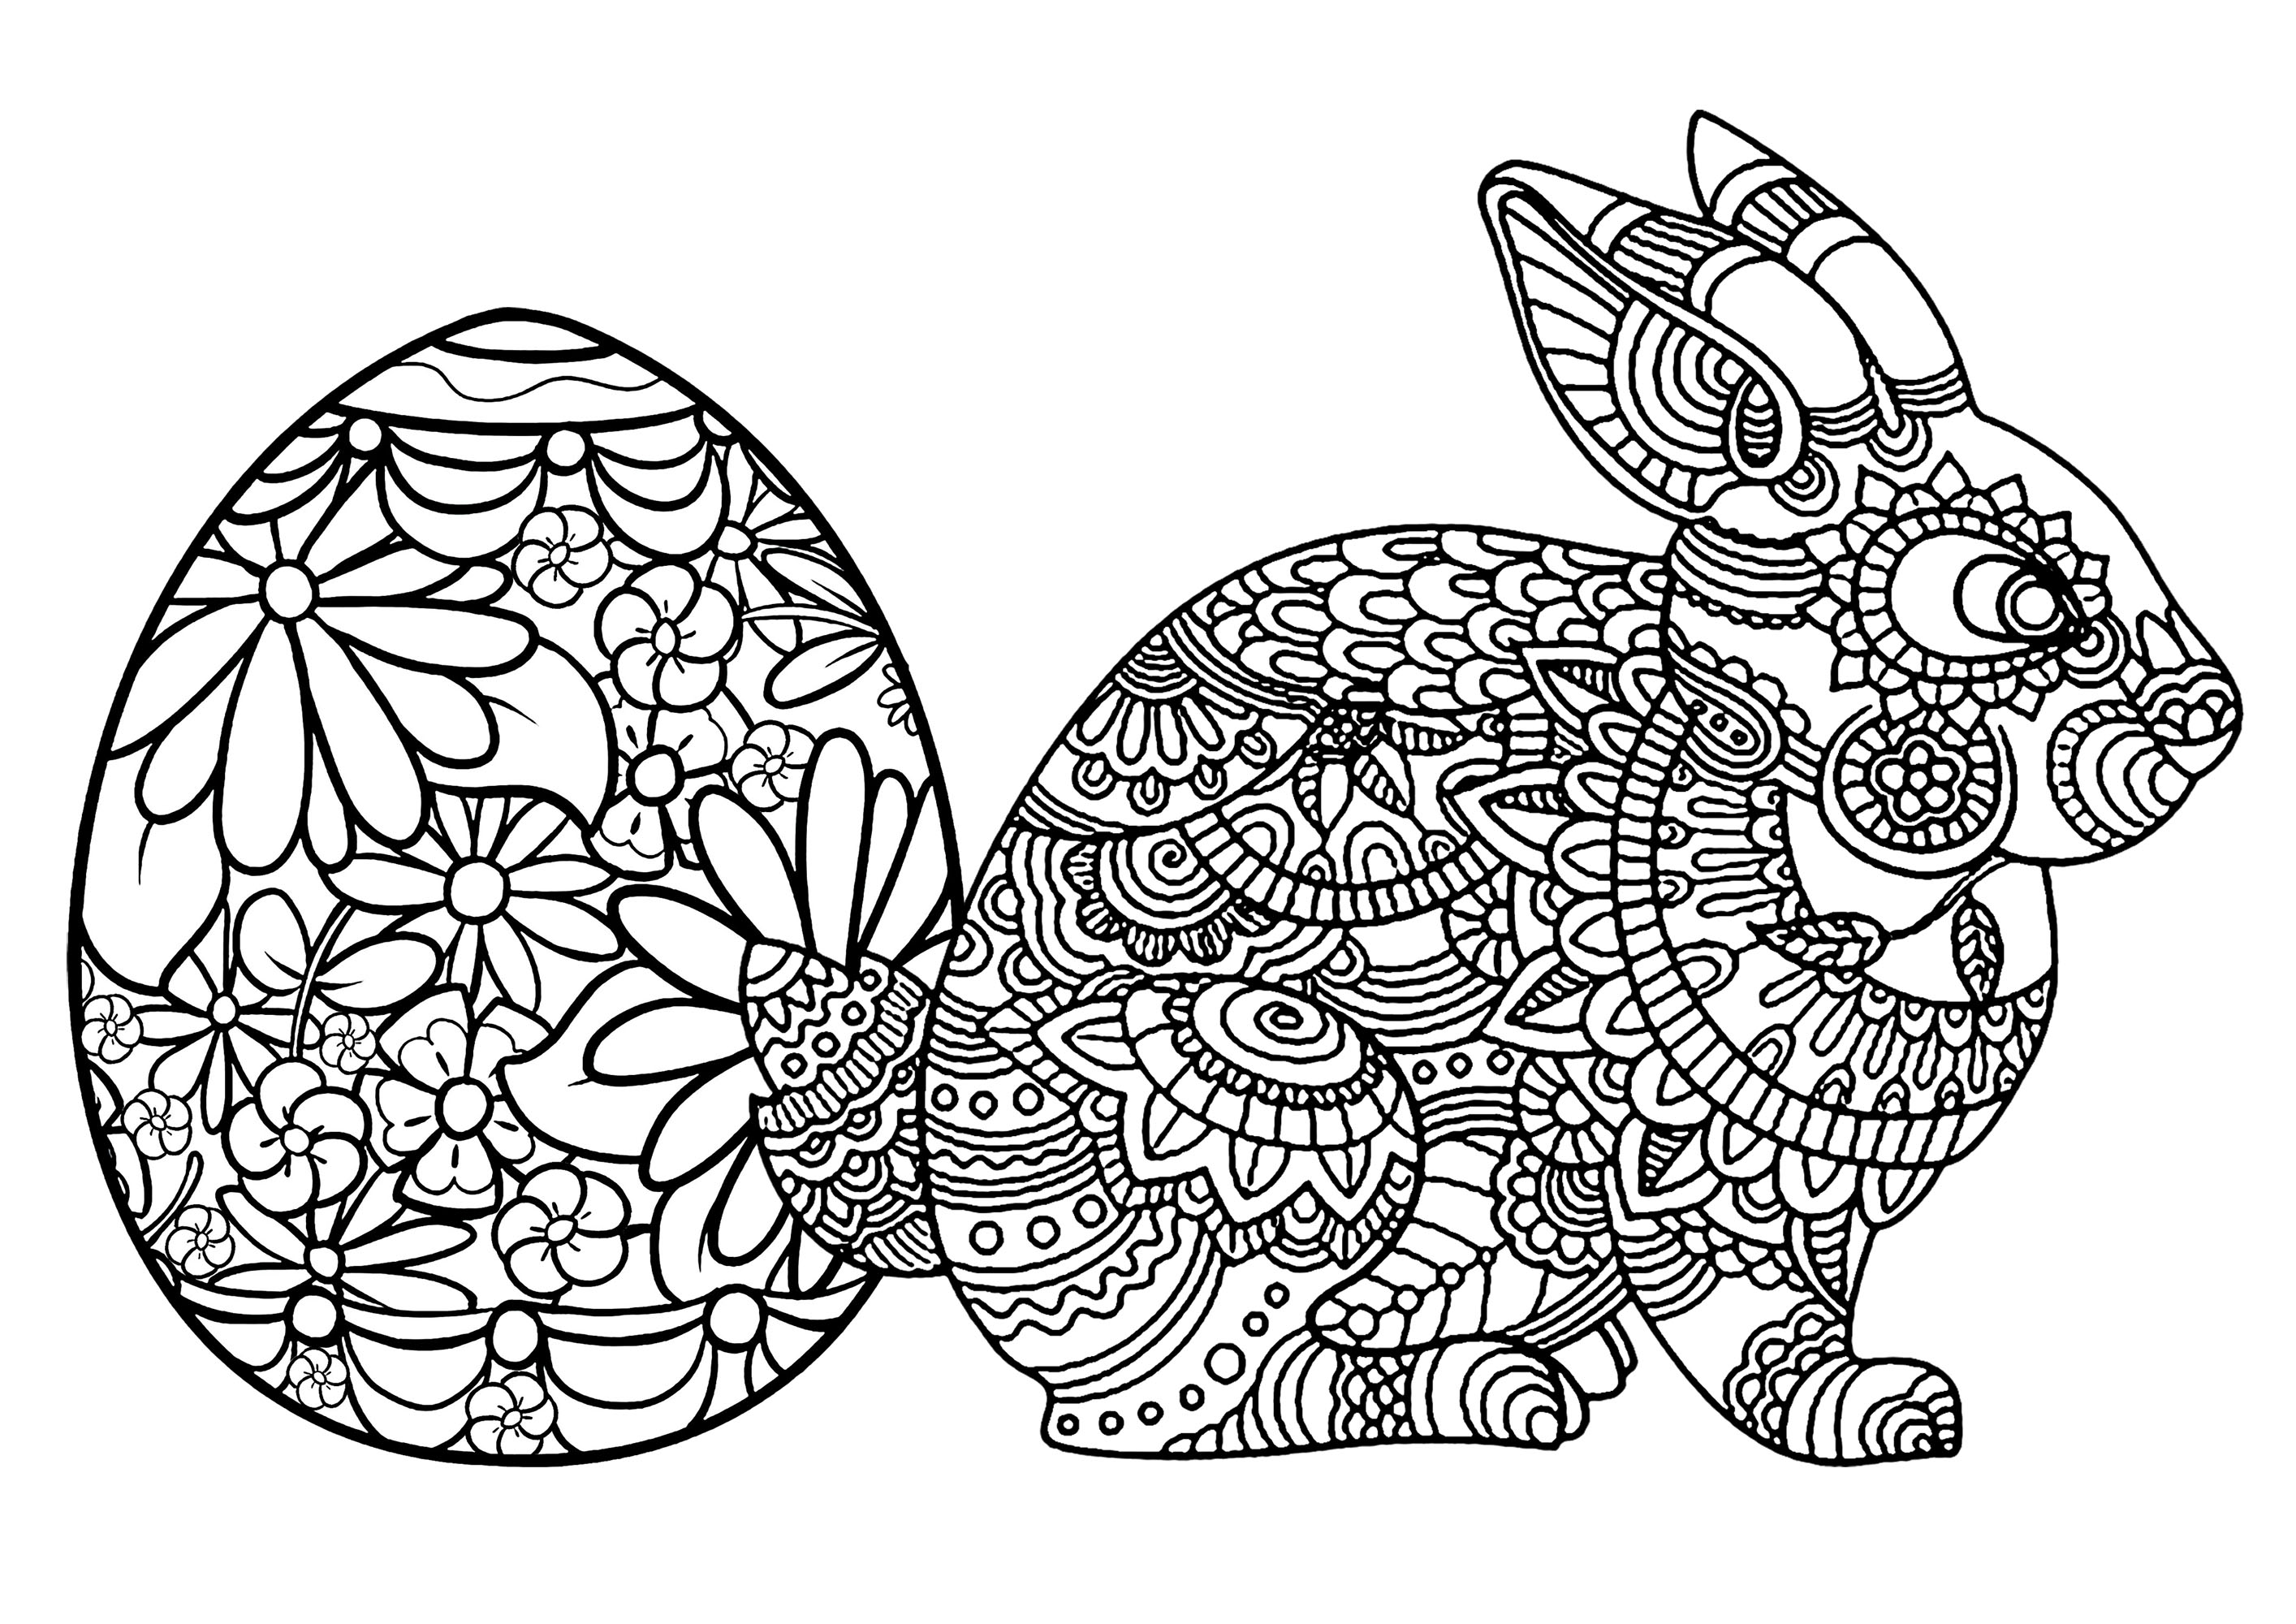 coloring-easter-and-rabbit-egg